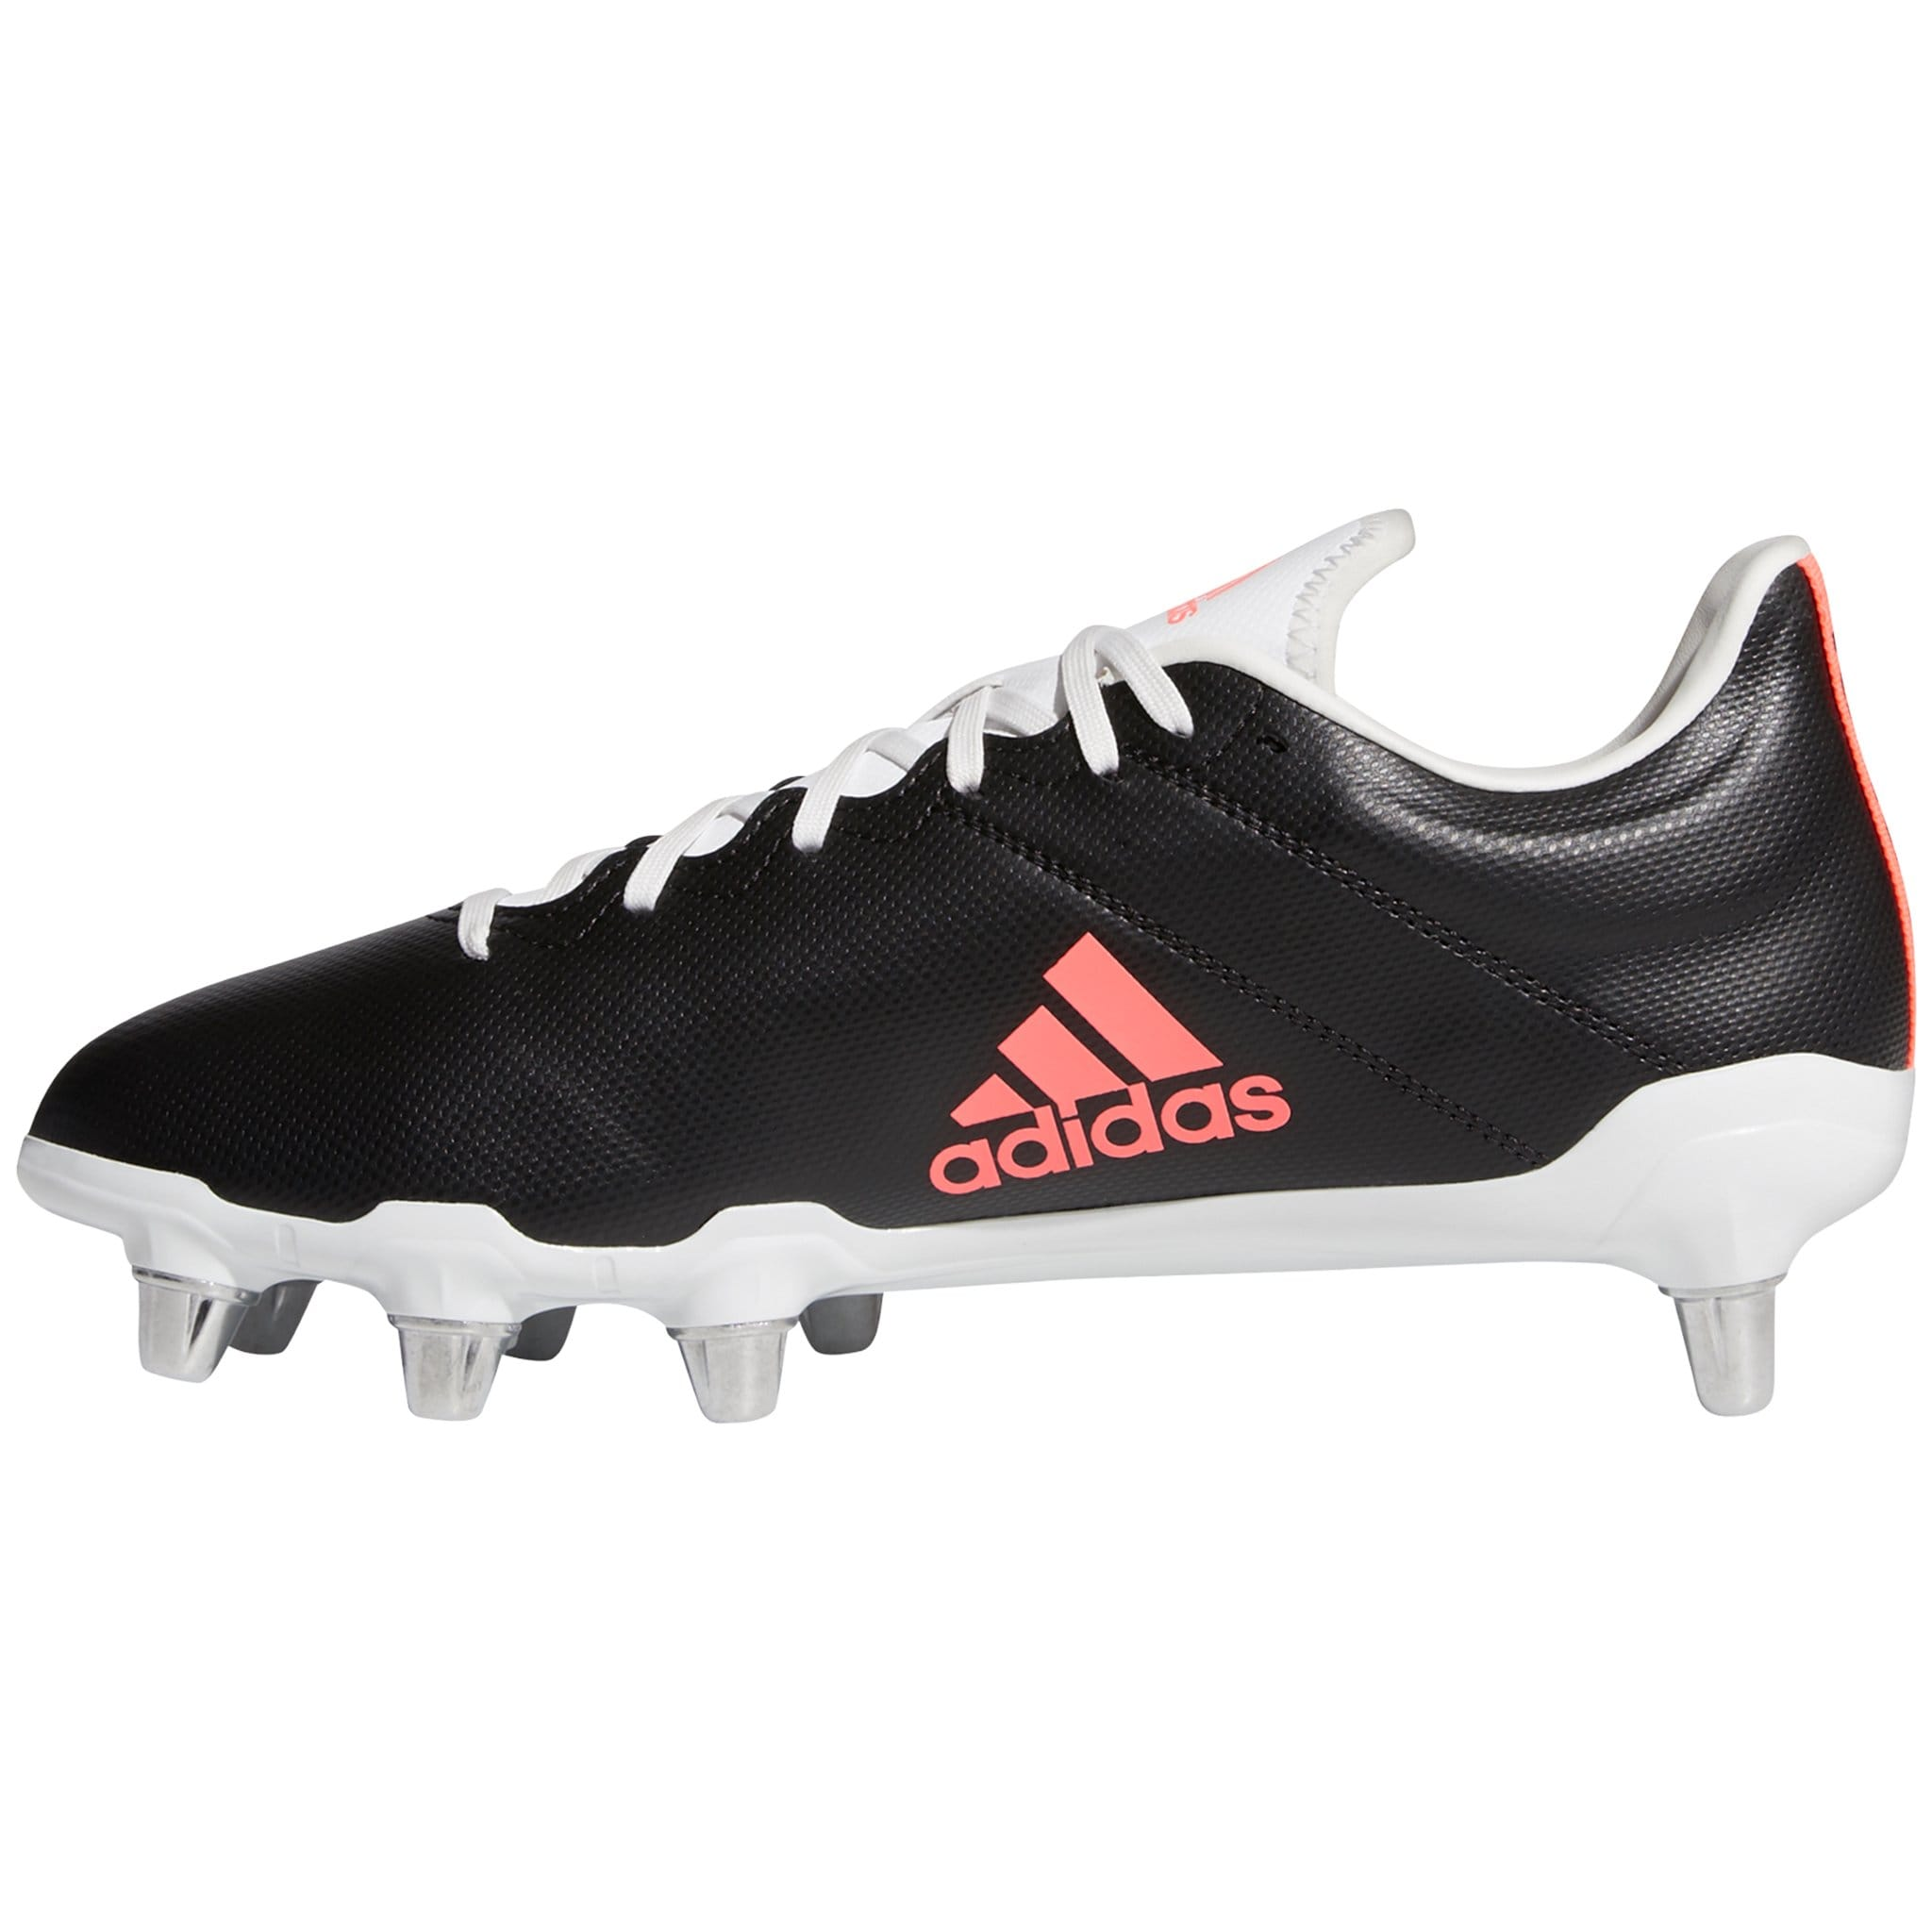 Side View Black Rugby Boots With Pink Adidas Logo